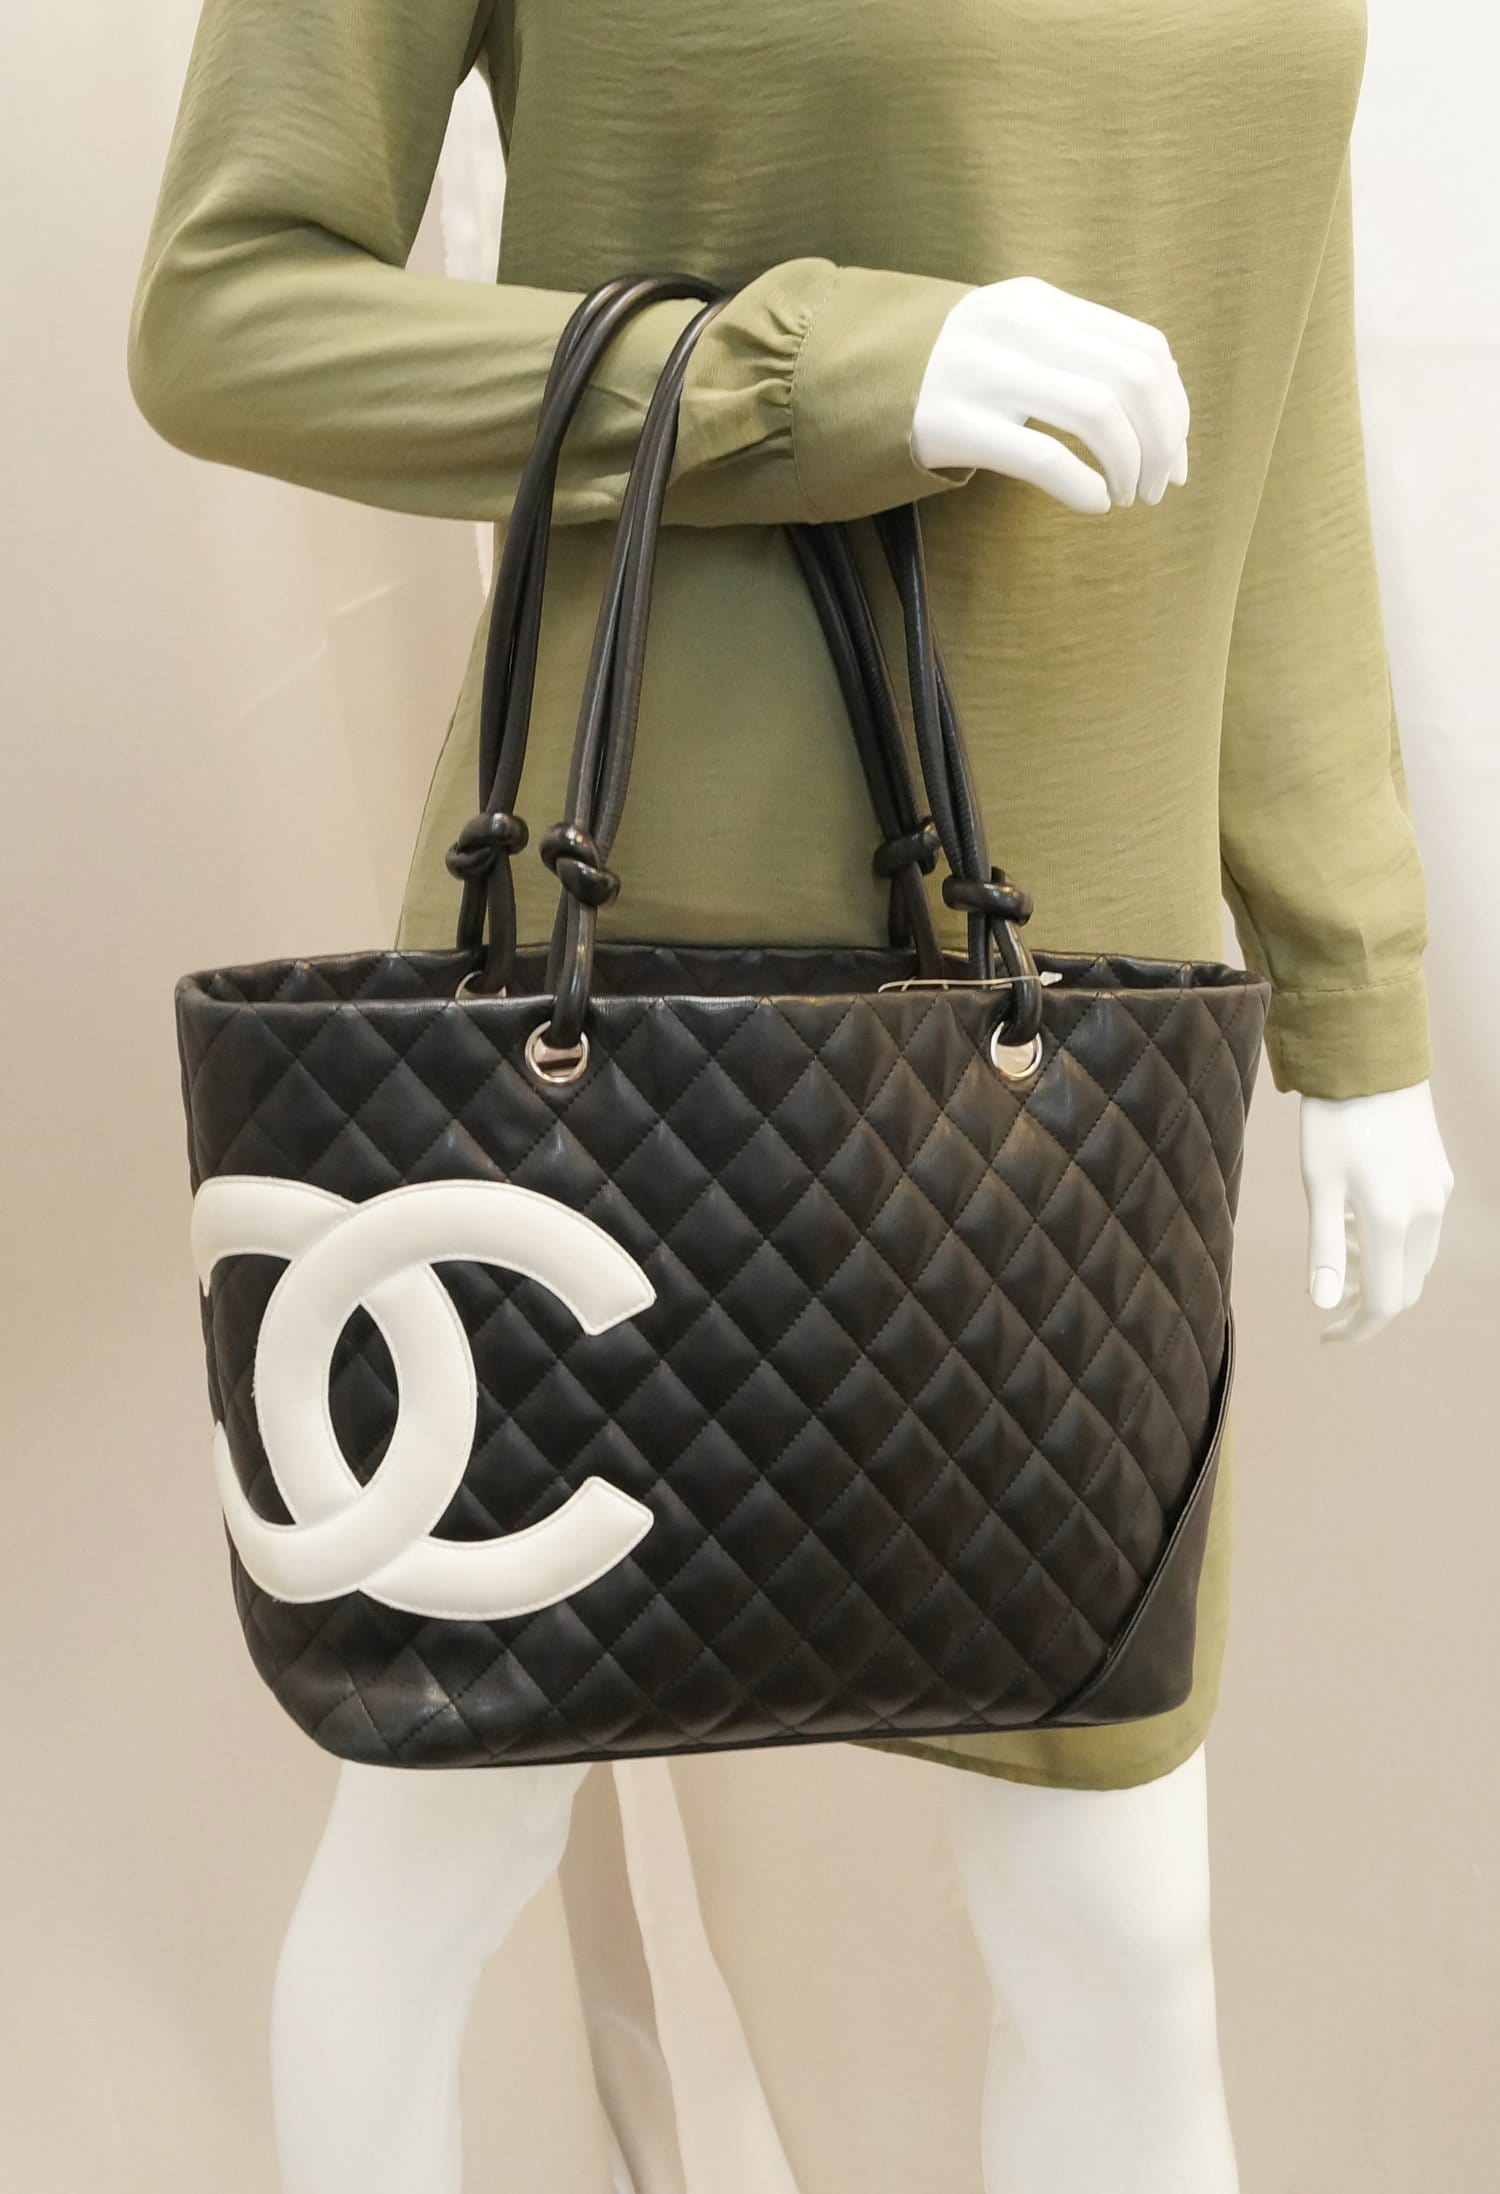 c0883e875f47b CHANEL Black Quilted Leather Large Cambon Tote Bag